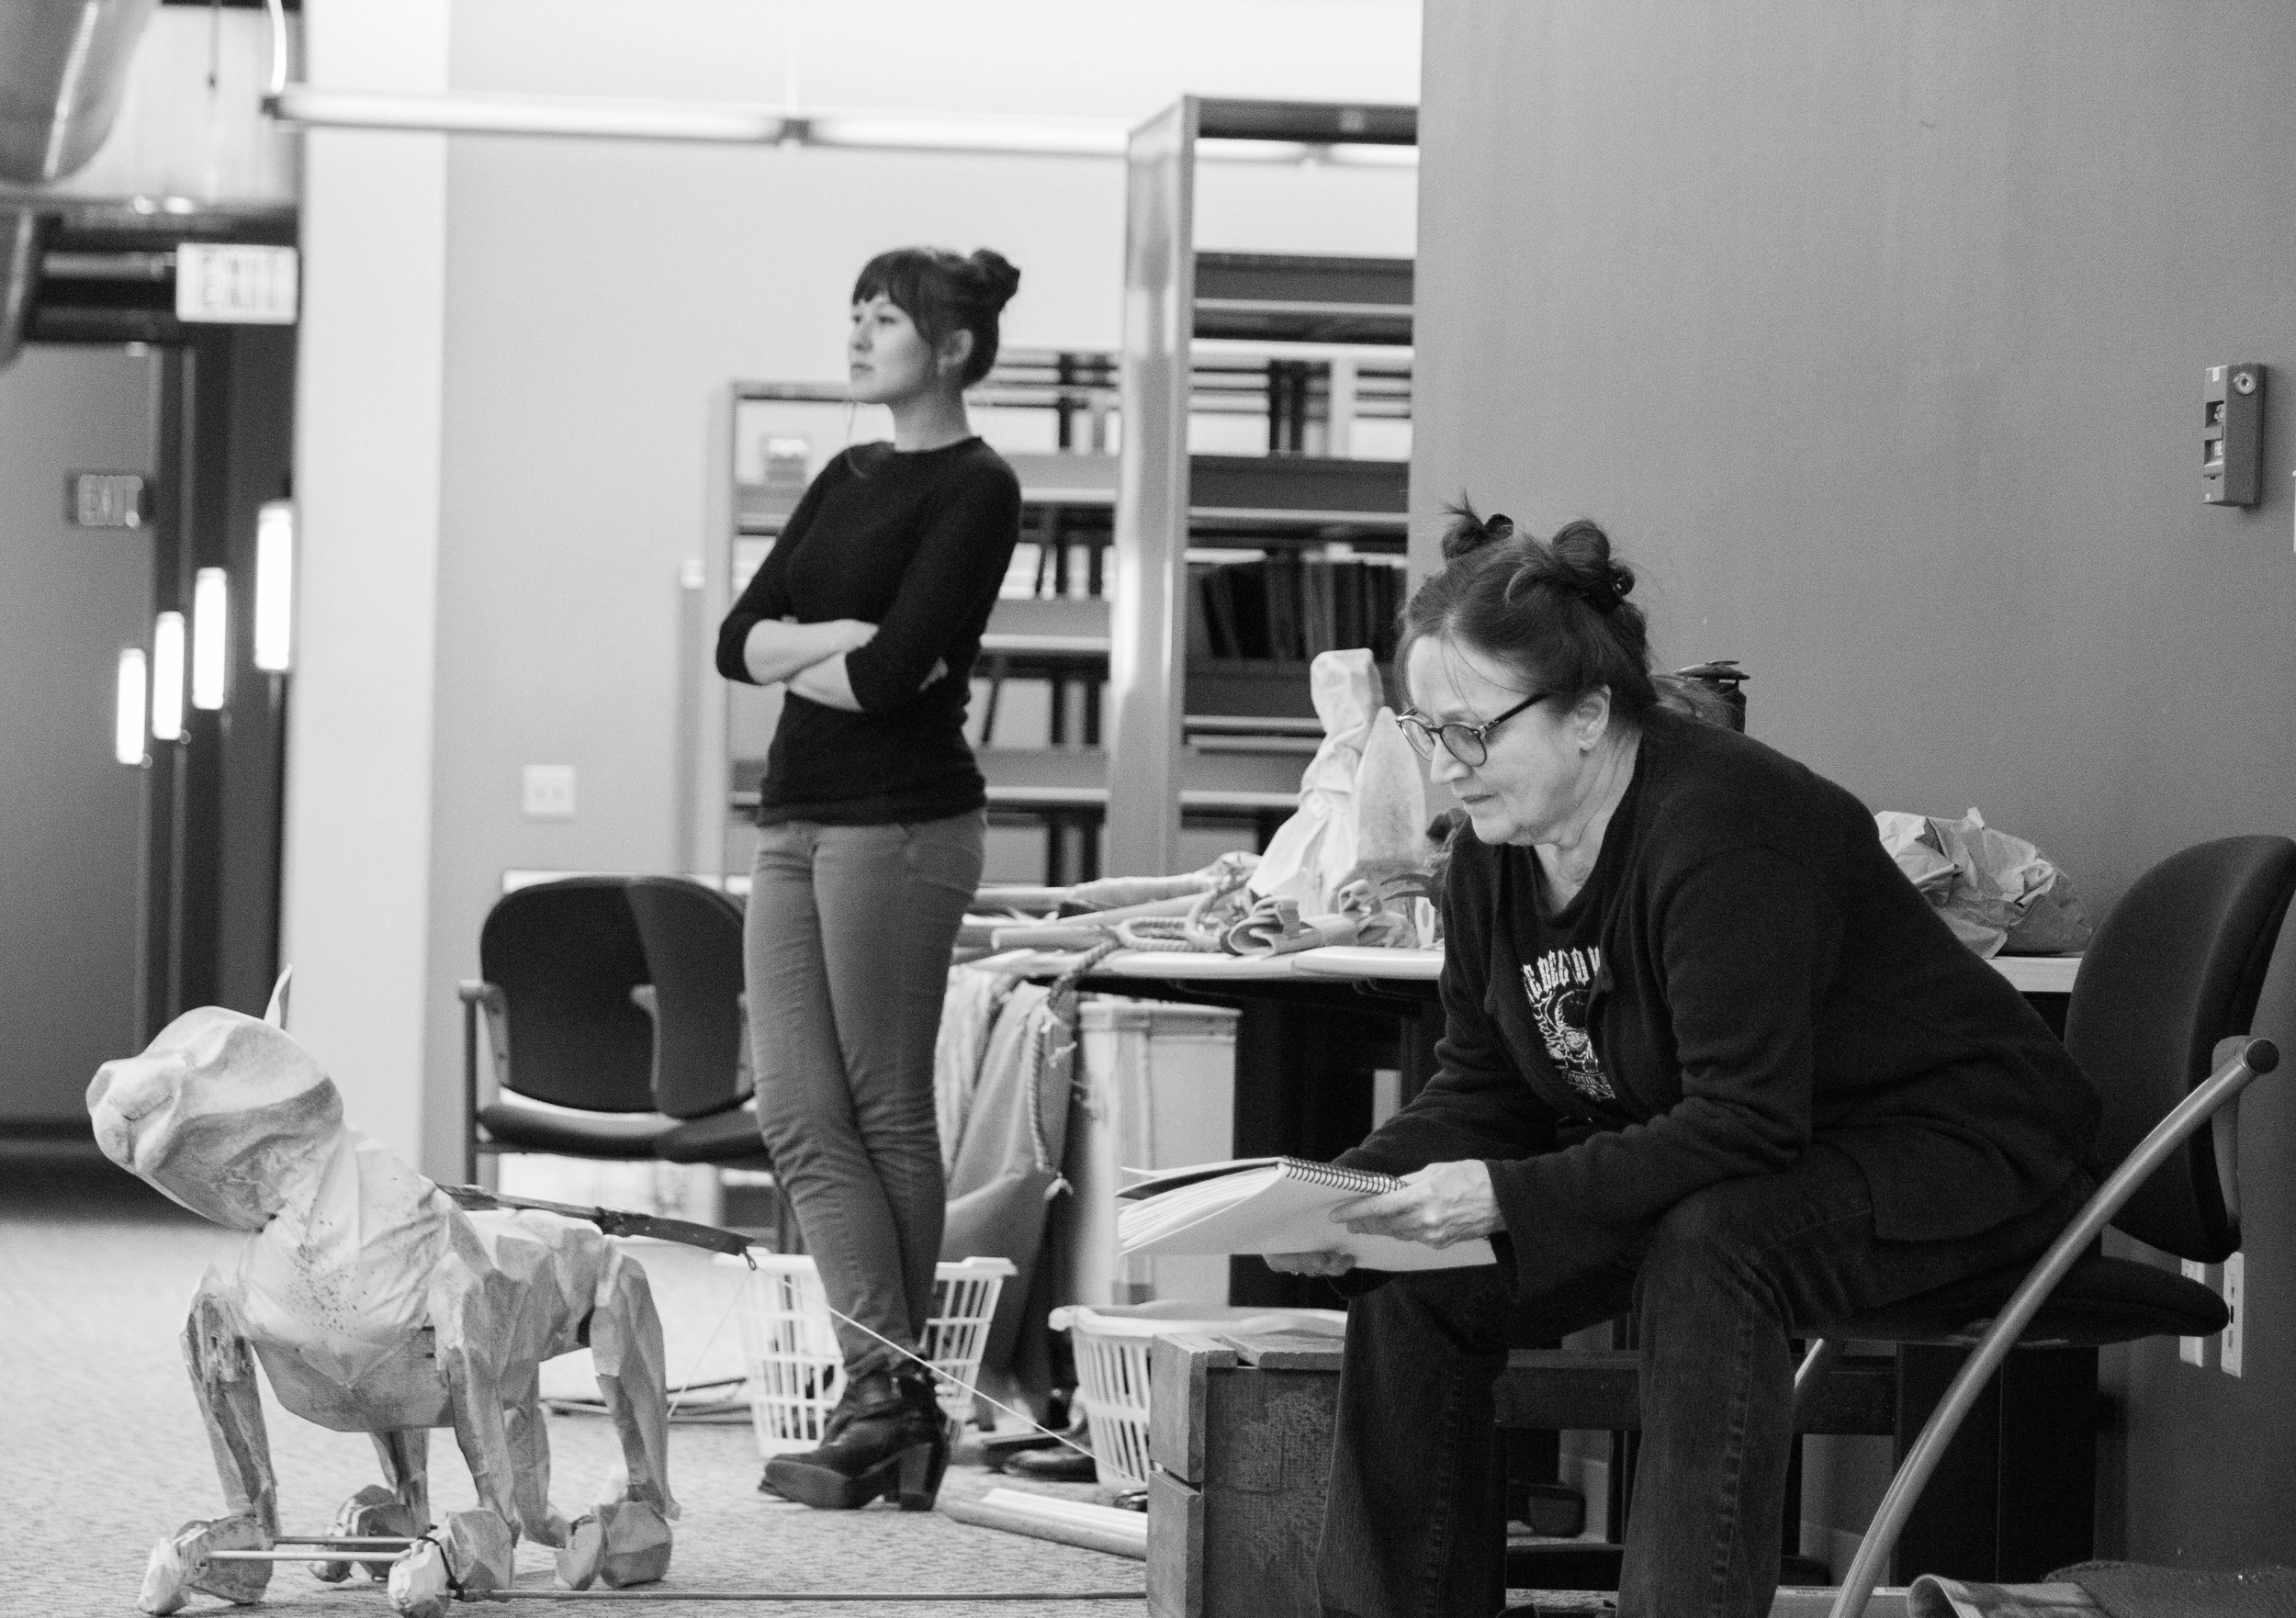 Emily Gardner Hall and Patti Perkins, and the Mountain Cat, in rehearsal